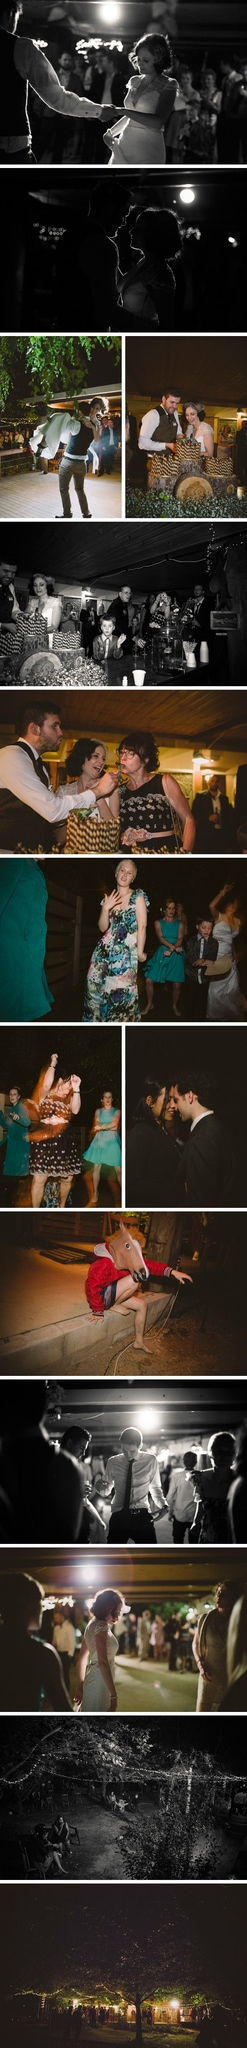 Rustic Redbrow Garden Wedding Photos